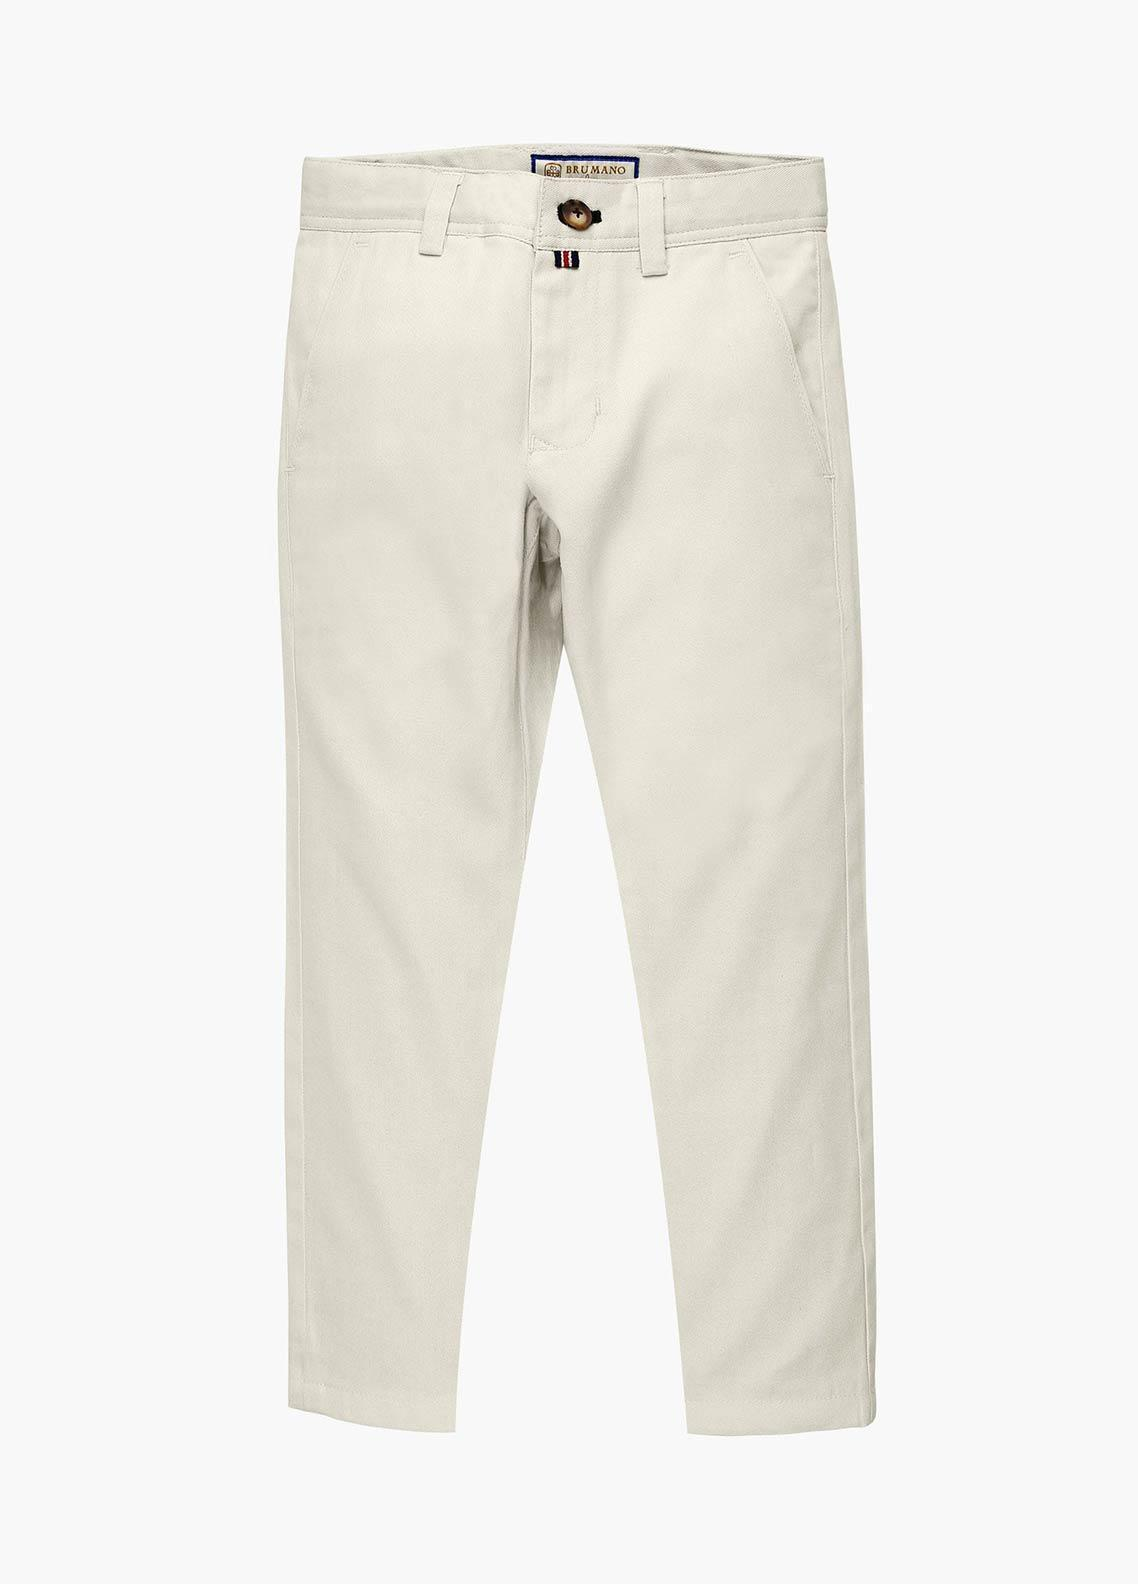 Brumano Cotton Casual Trousers for Boys - Blue BM20JP Beige Twill Casual Trouser - Junior